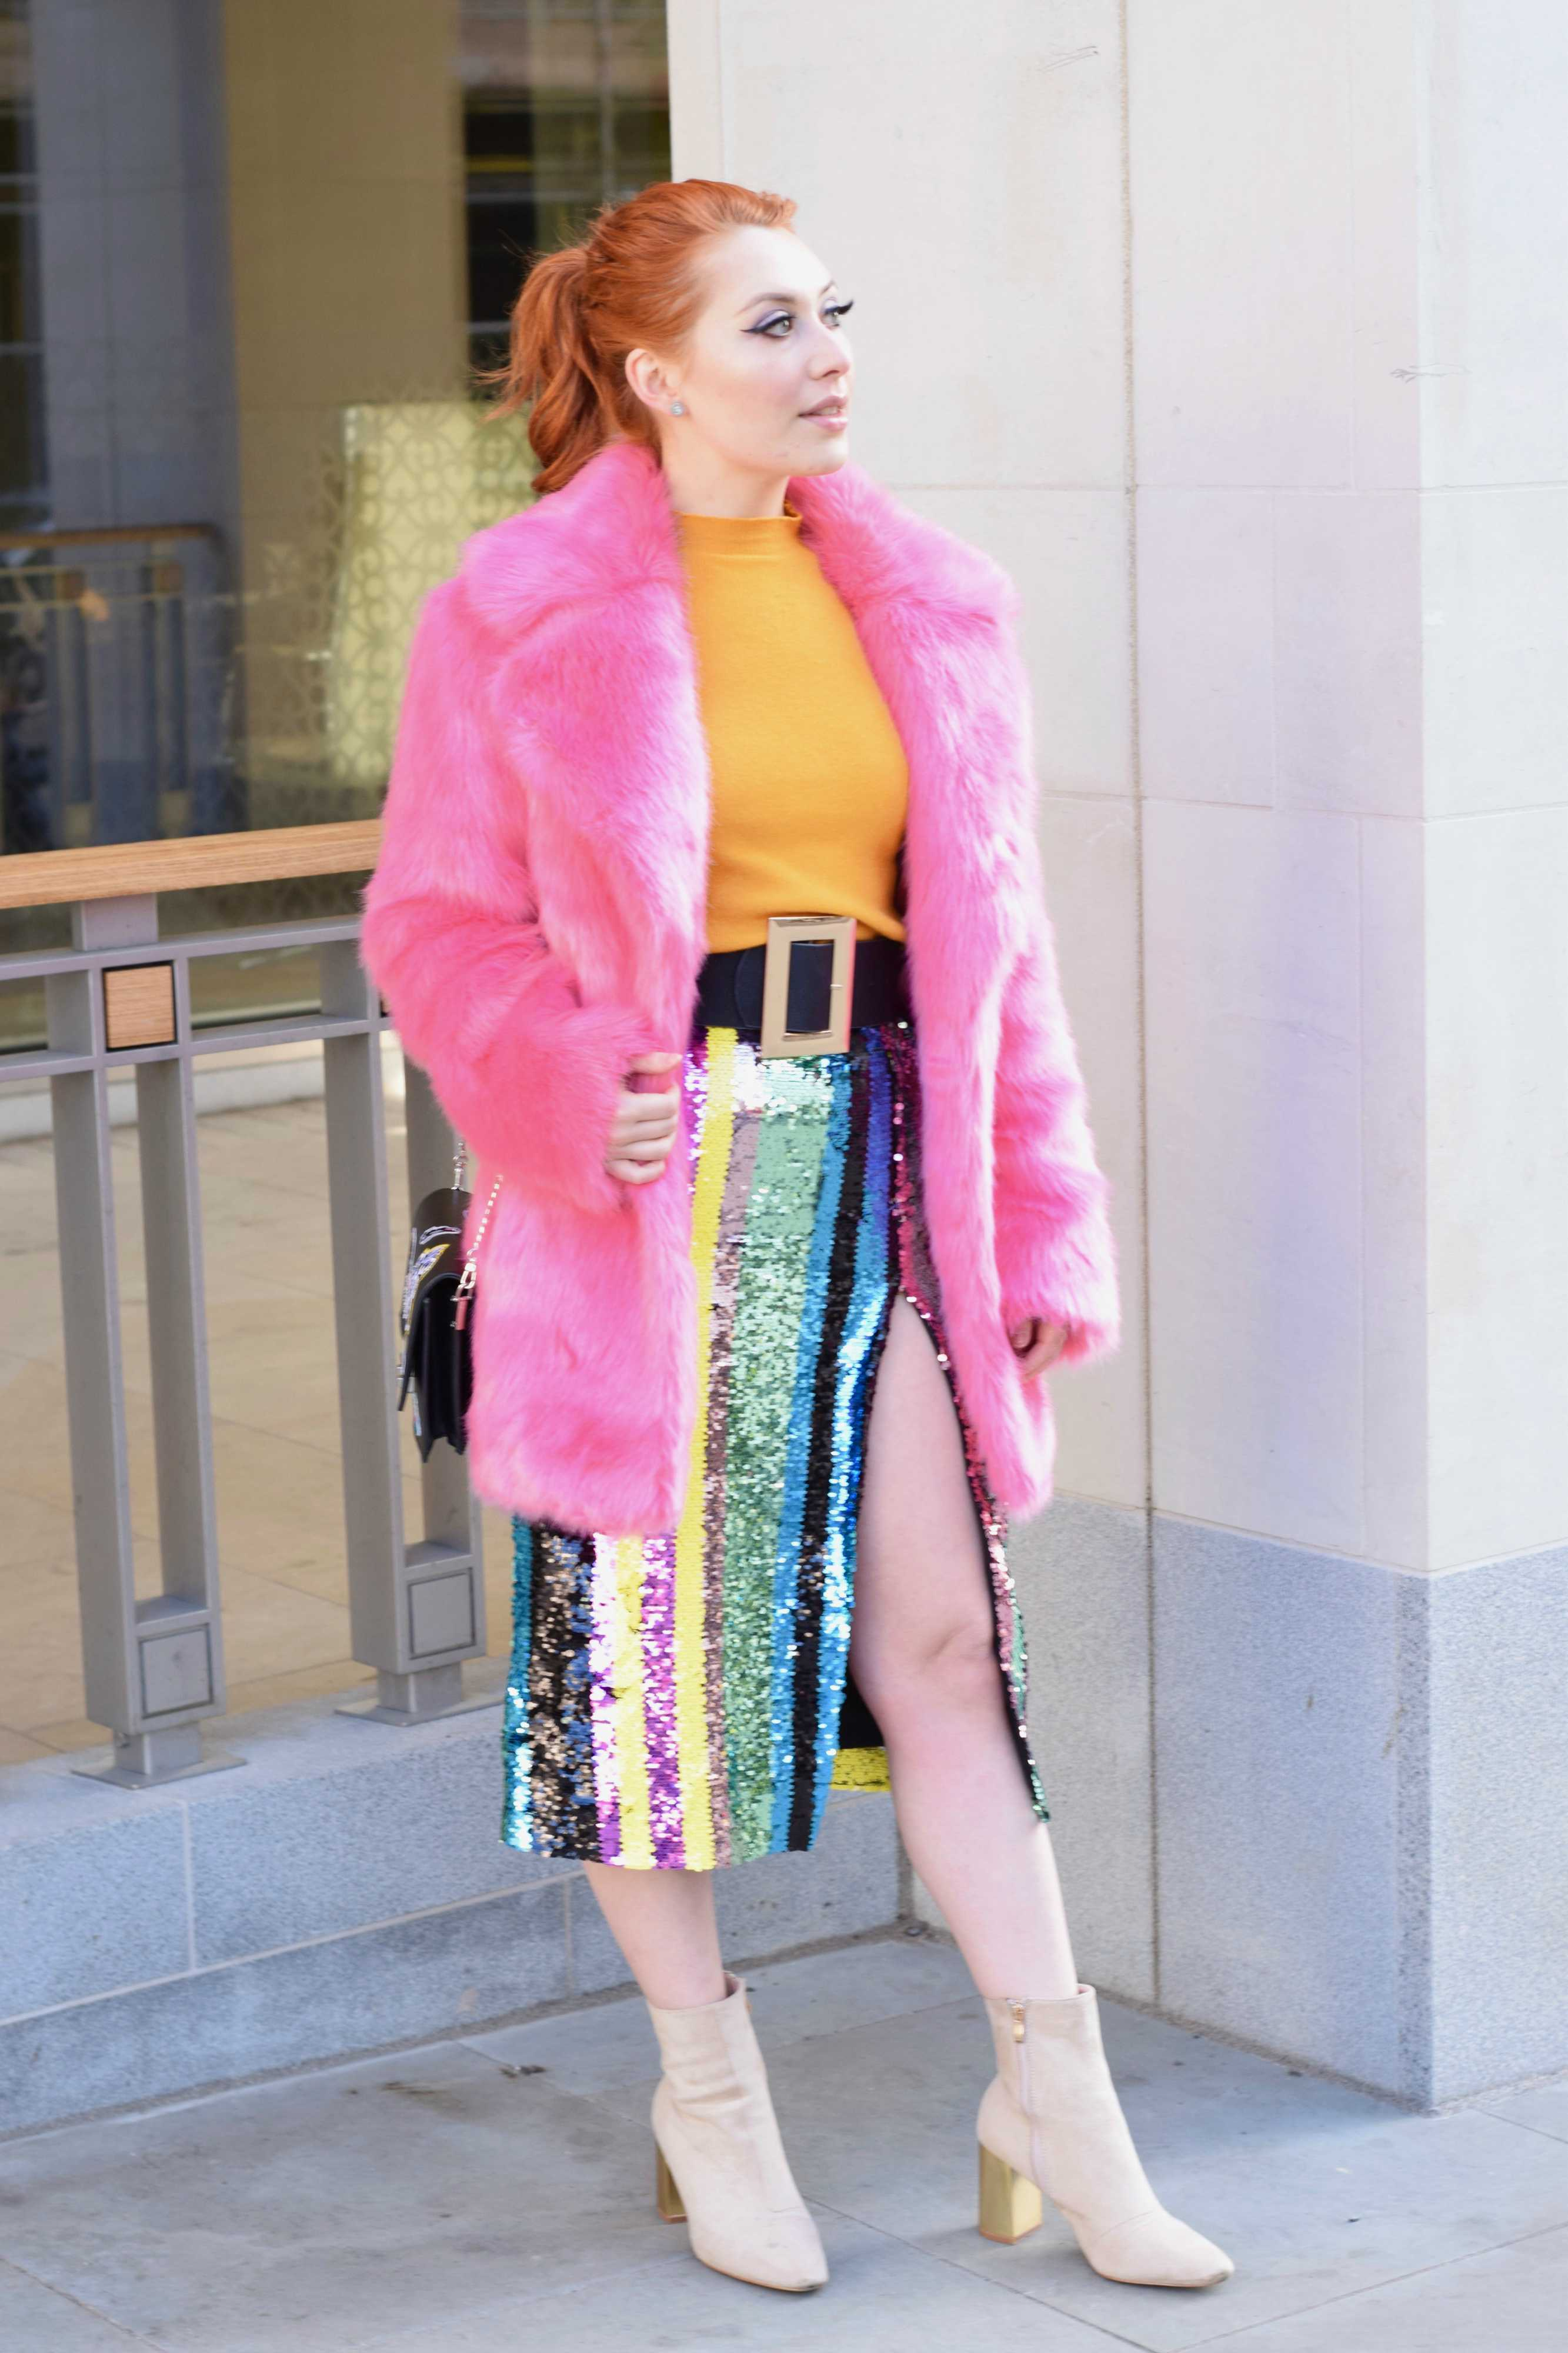 Blogger Twenty-Something City at The Strand wearing bold colourful look for London Fashion Week 2018